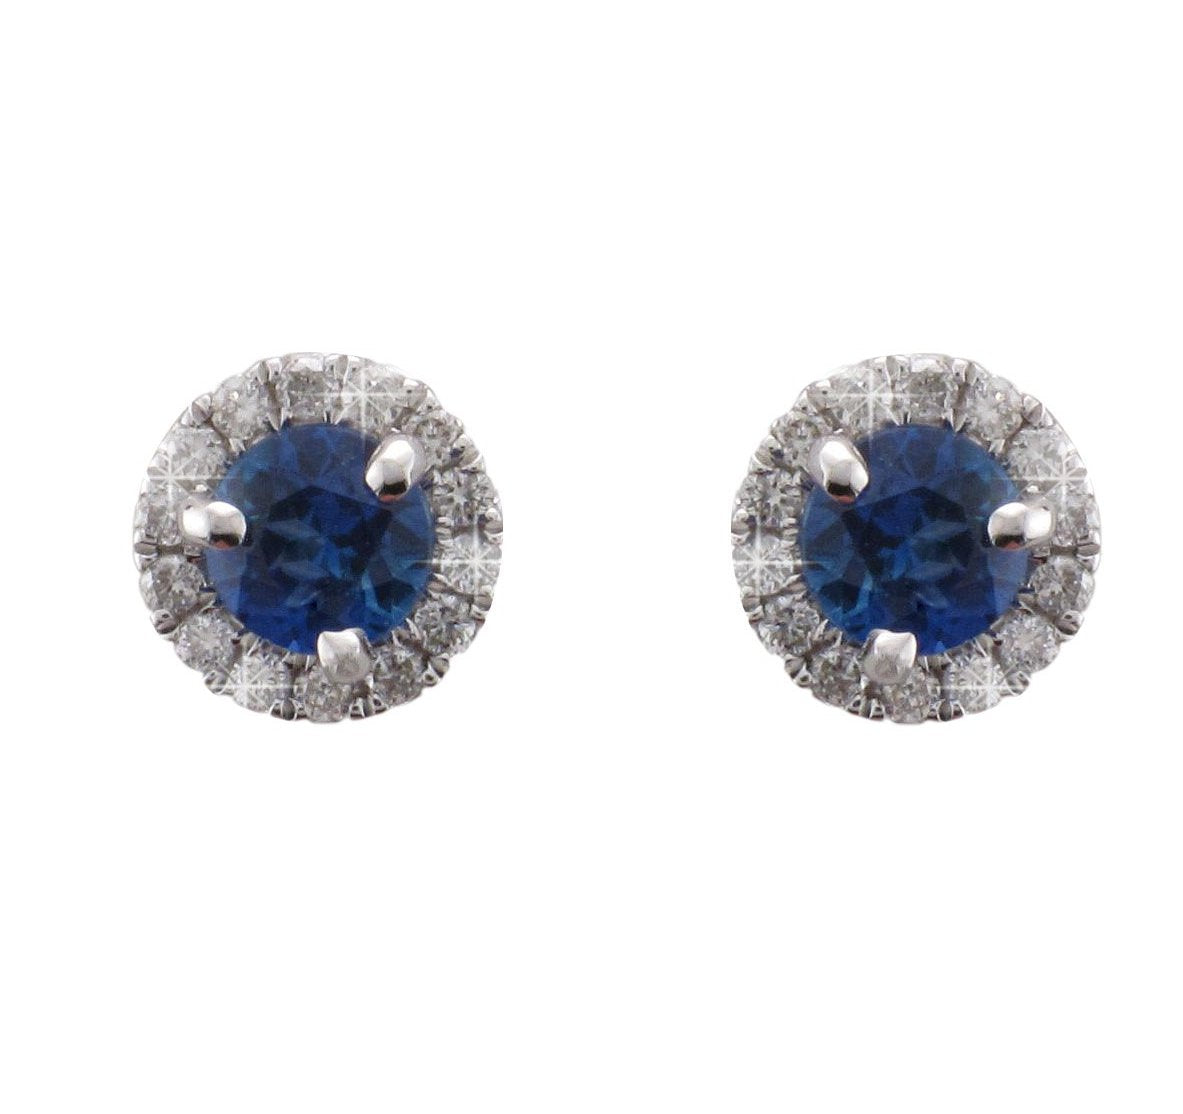 18ct White Gold Sapphire & Diamond Earrings - Andrew Scott